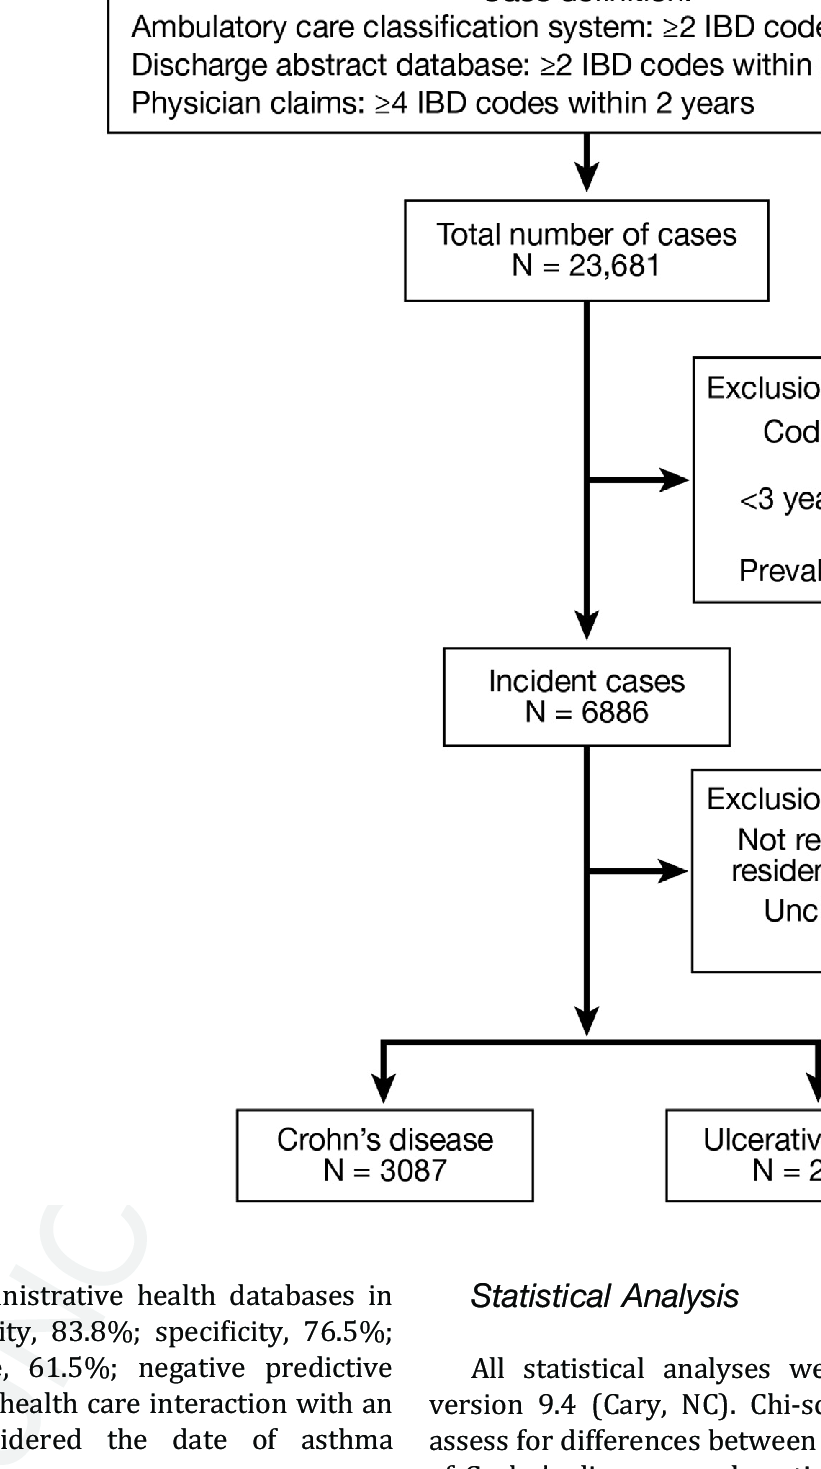 hight resolution of flow diagram depicting the identification of cases of crohn s disease and ulcerative colitis for inclusion in